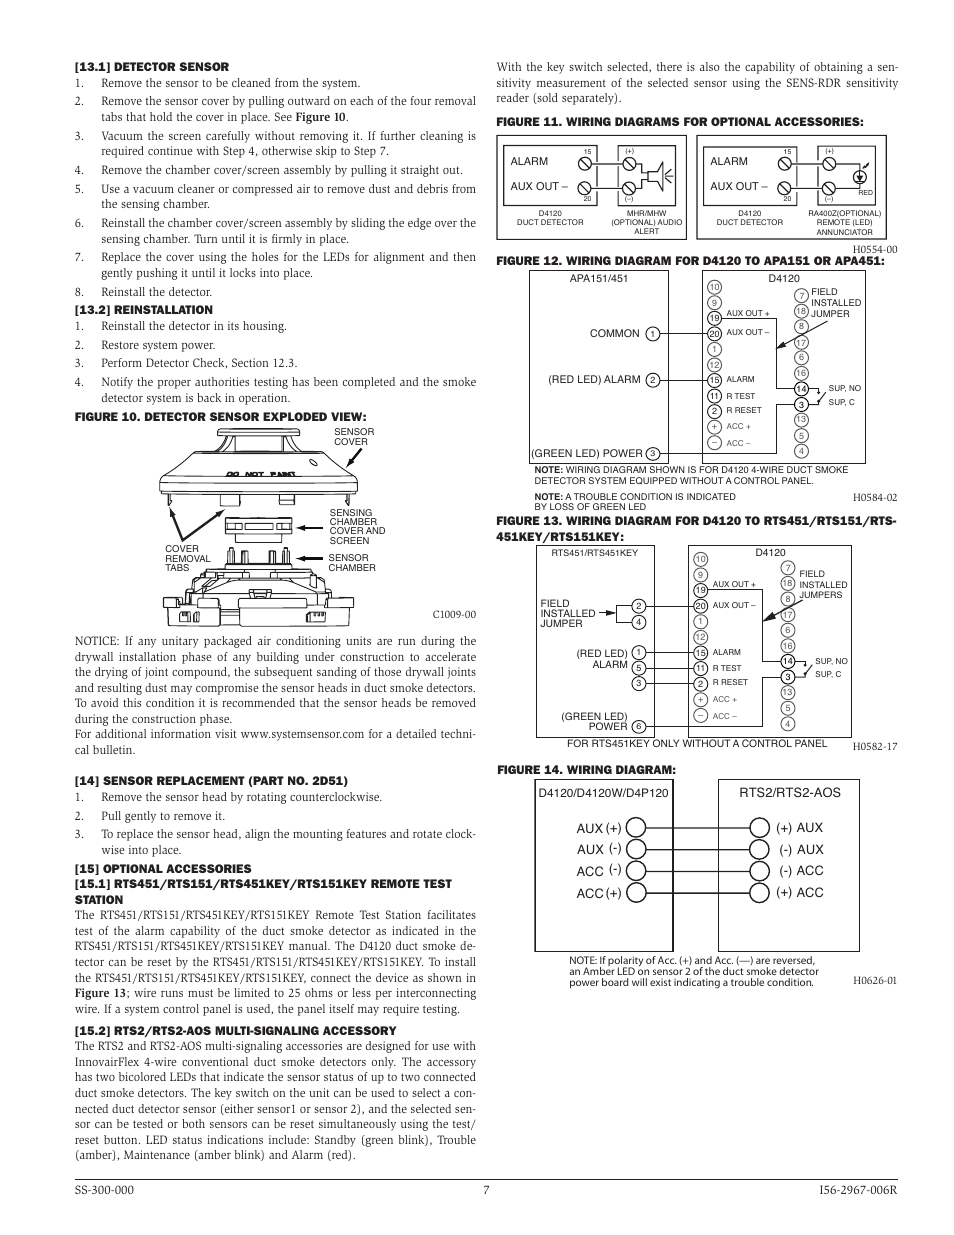 system sensor d4120 d4p120 and d4s page7 system sensor d4120, d4p120, and d4s user manual page 7 8 system sensor conventional smoke detector wiring diagram at n-0.co